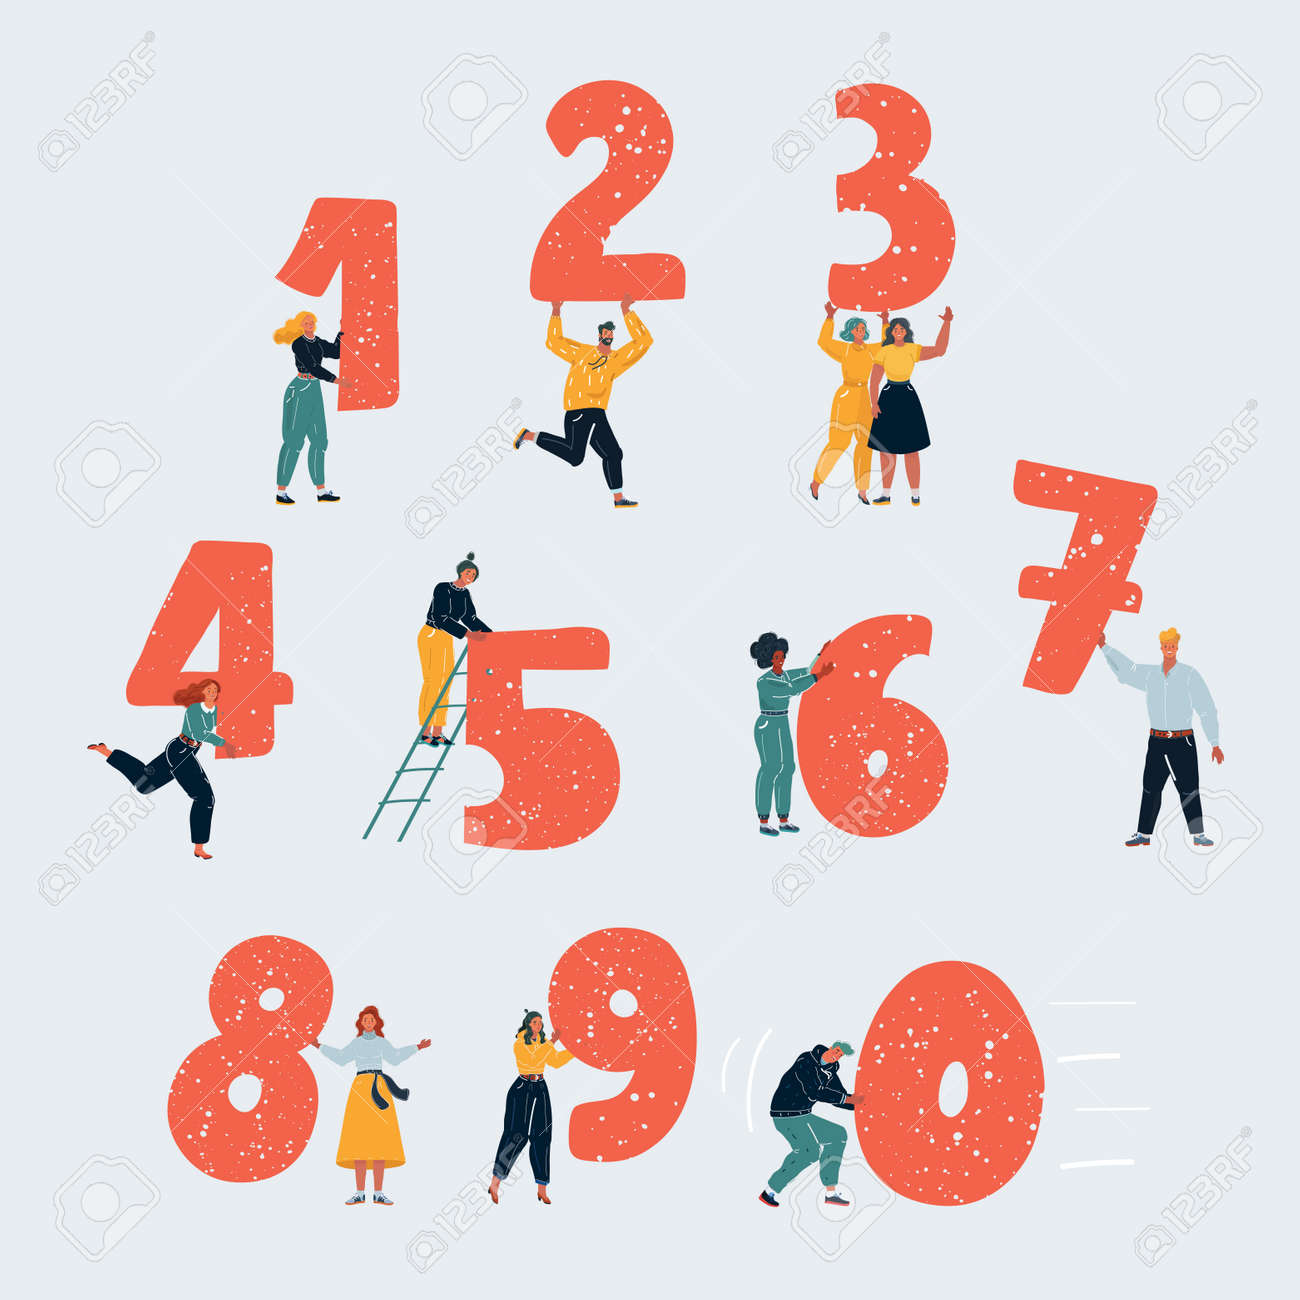 Vector illustration of little people with numbers. Tiny people with one, two, thee, four, five, six, seven, eight, nine, zero on white background. - 161049644